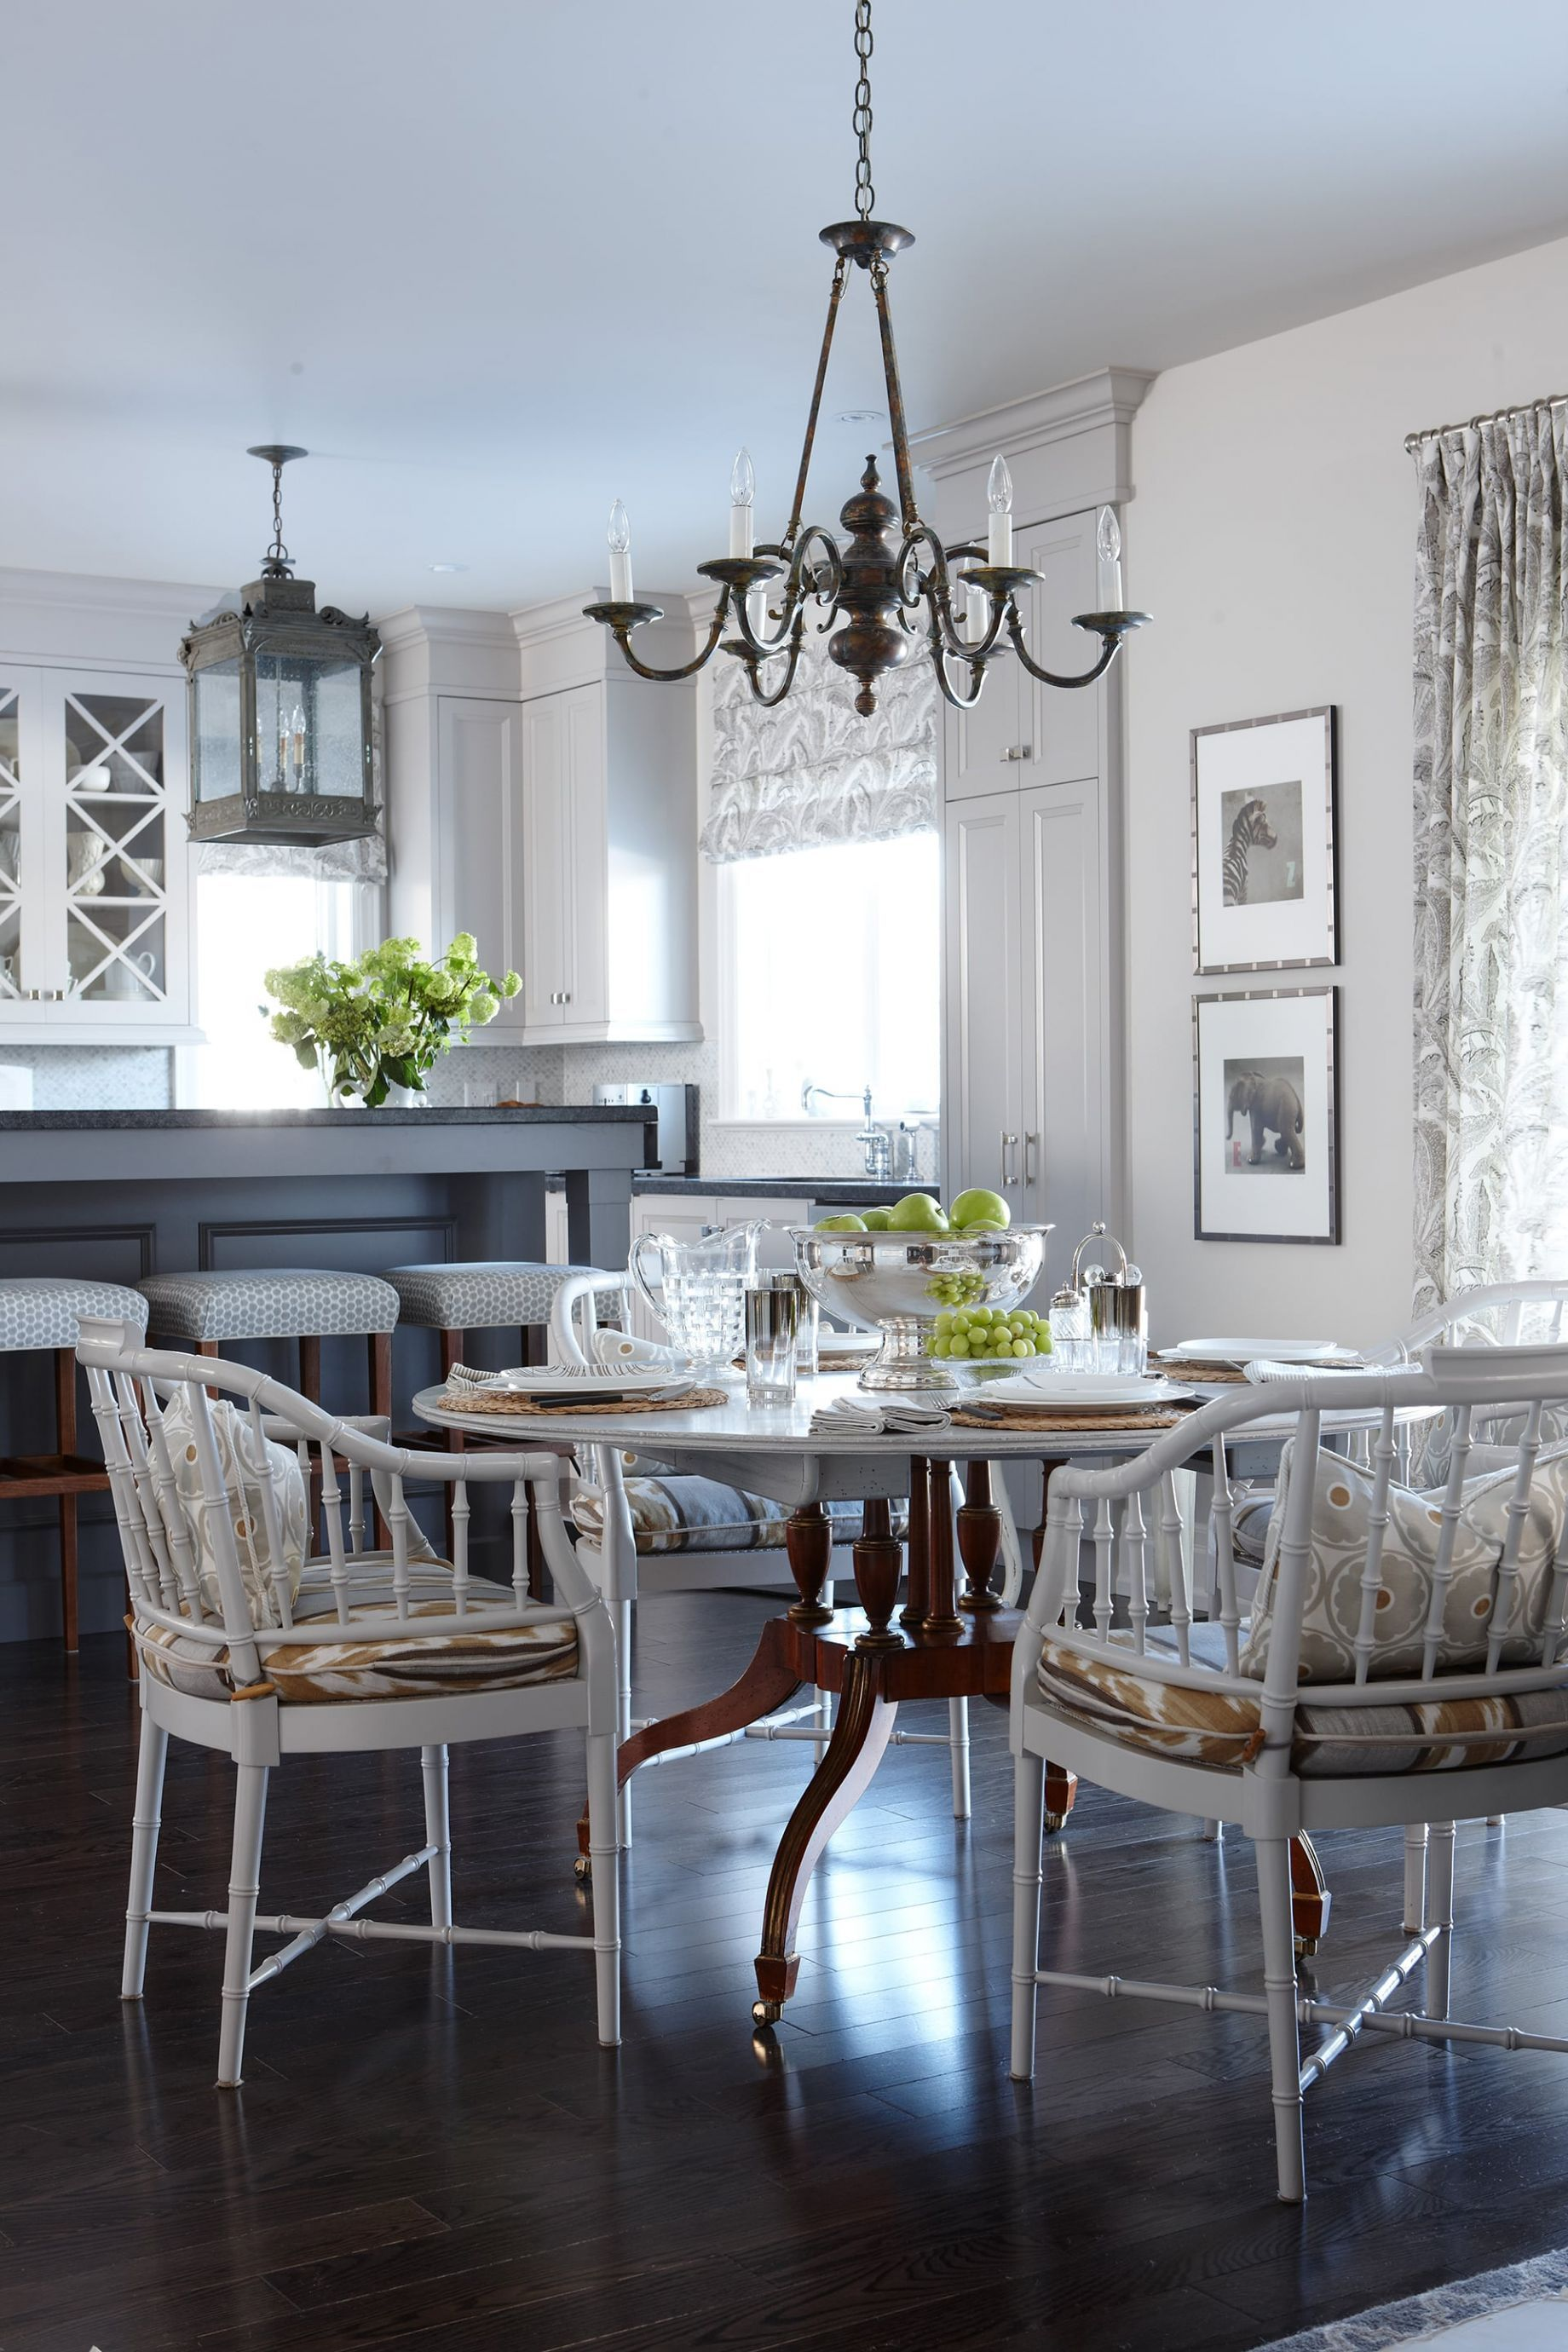 Kitchen Dining Table With Plating